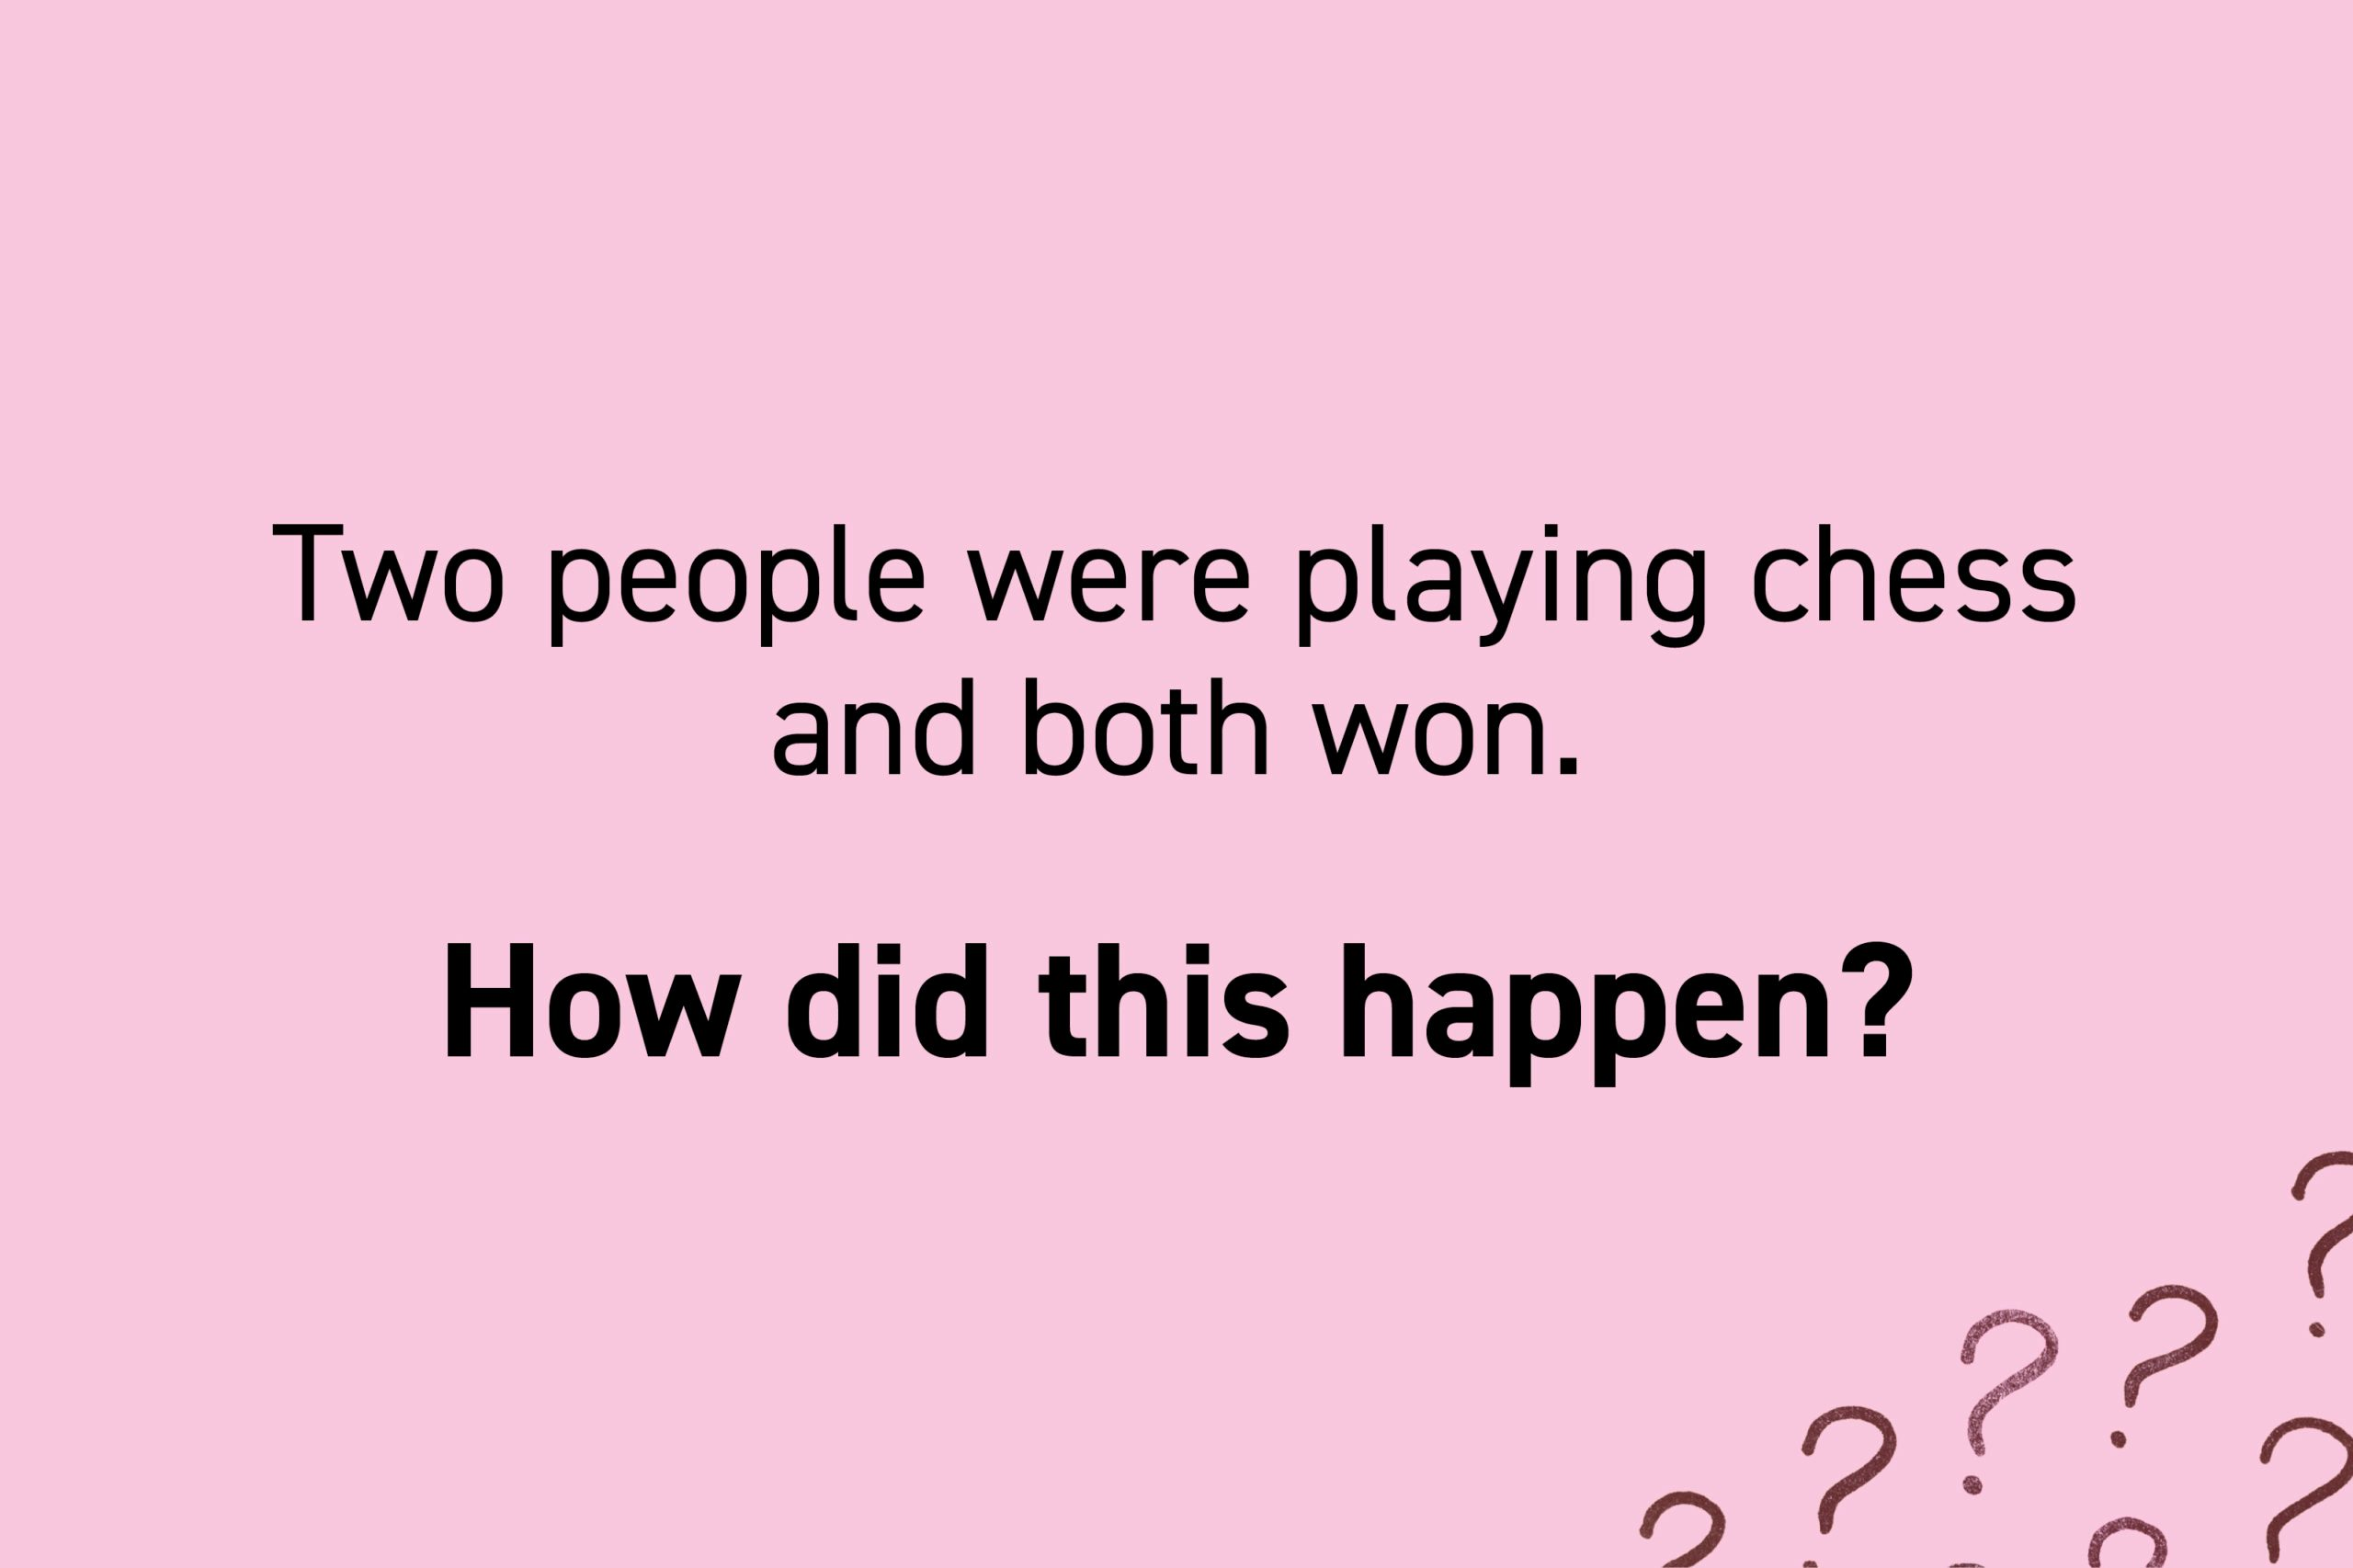 Two people were playing chess and both won. How did this happen?